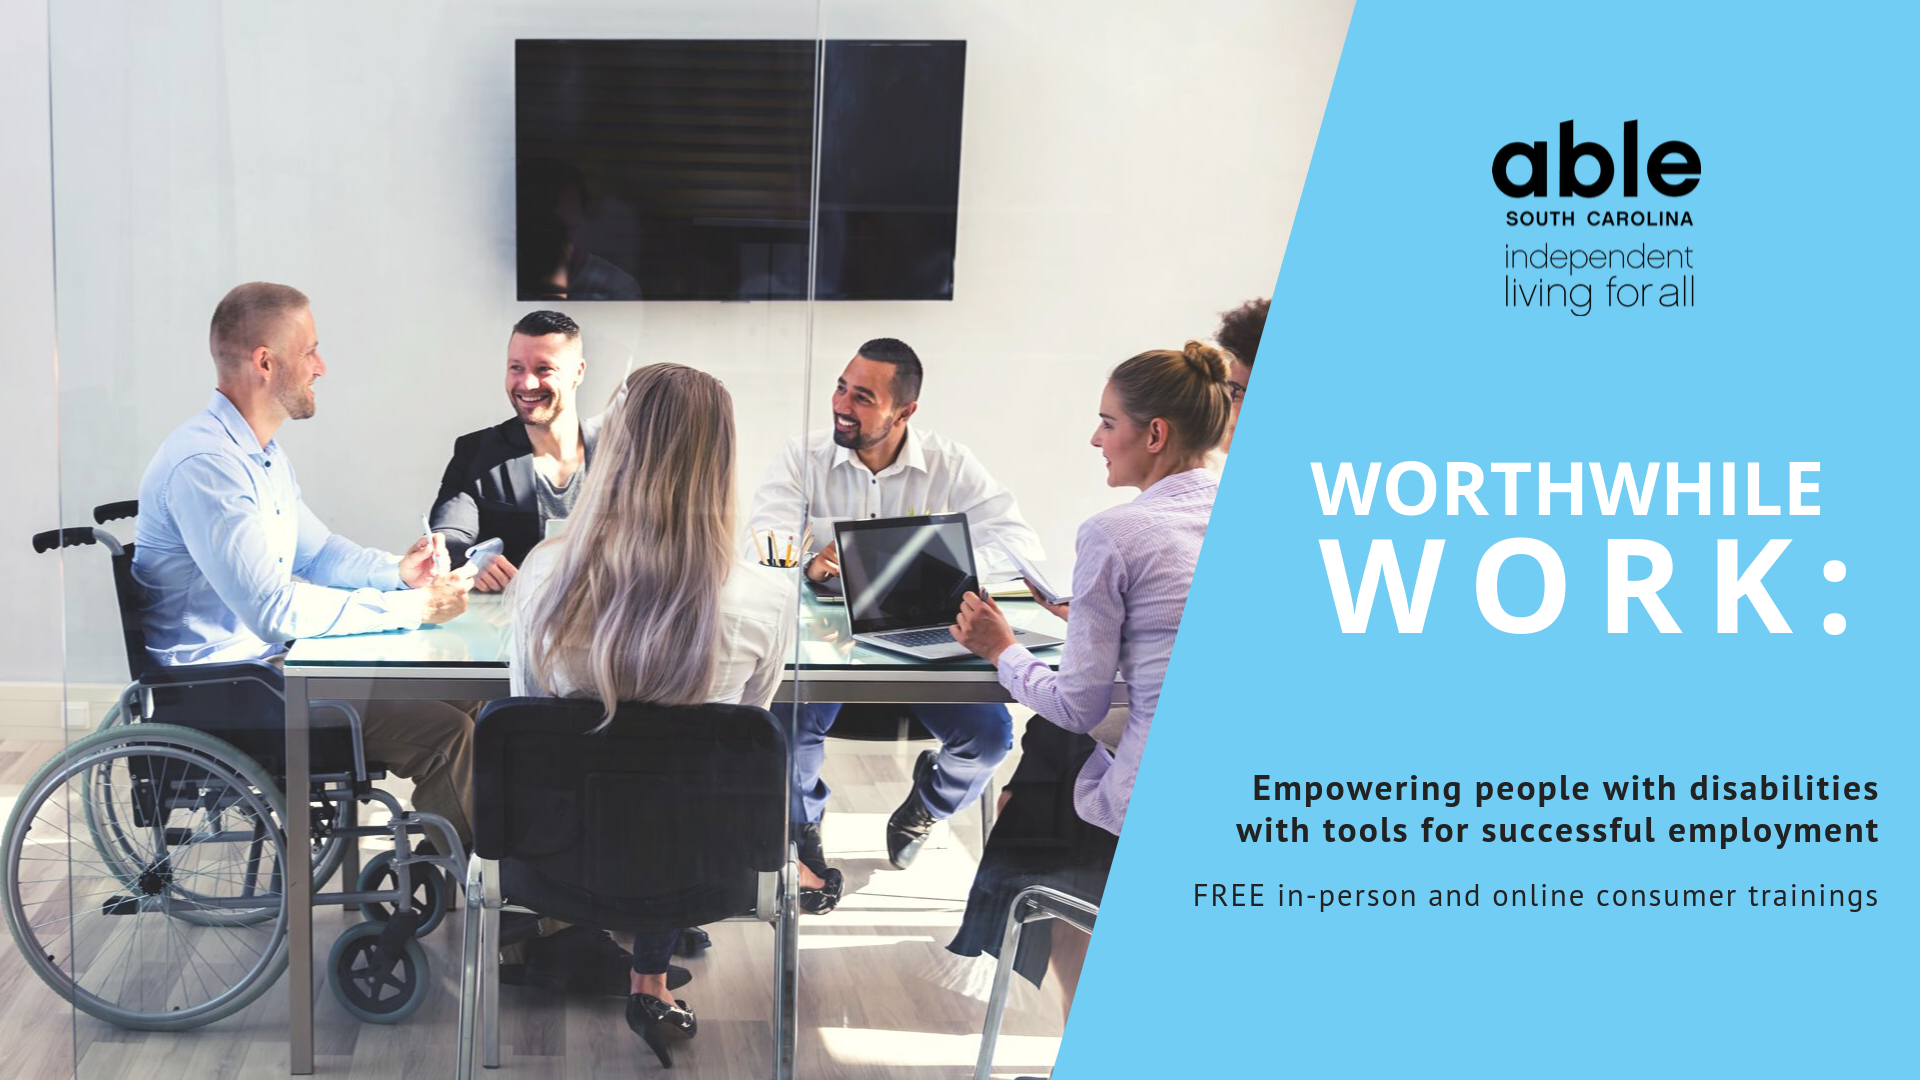 """[image: graphic on the left with a photo of employees in an office at a table. On the right is a blue background with the Able SC logo and text that reads """"Worthwhile Work: Empowering people with disabilities with tools for successful employment. FREE in-person and online consumer trainings.""""]"""